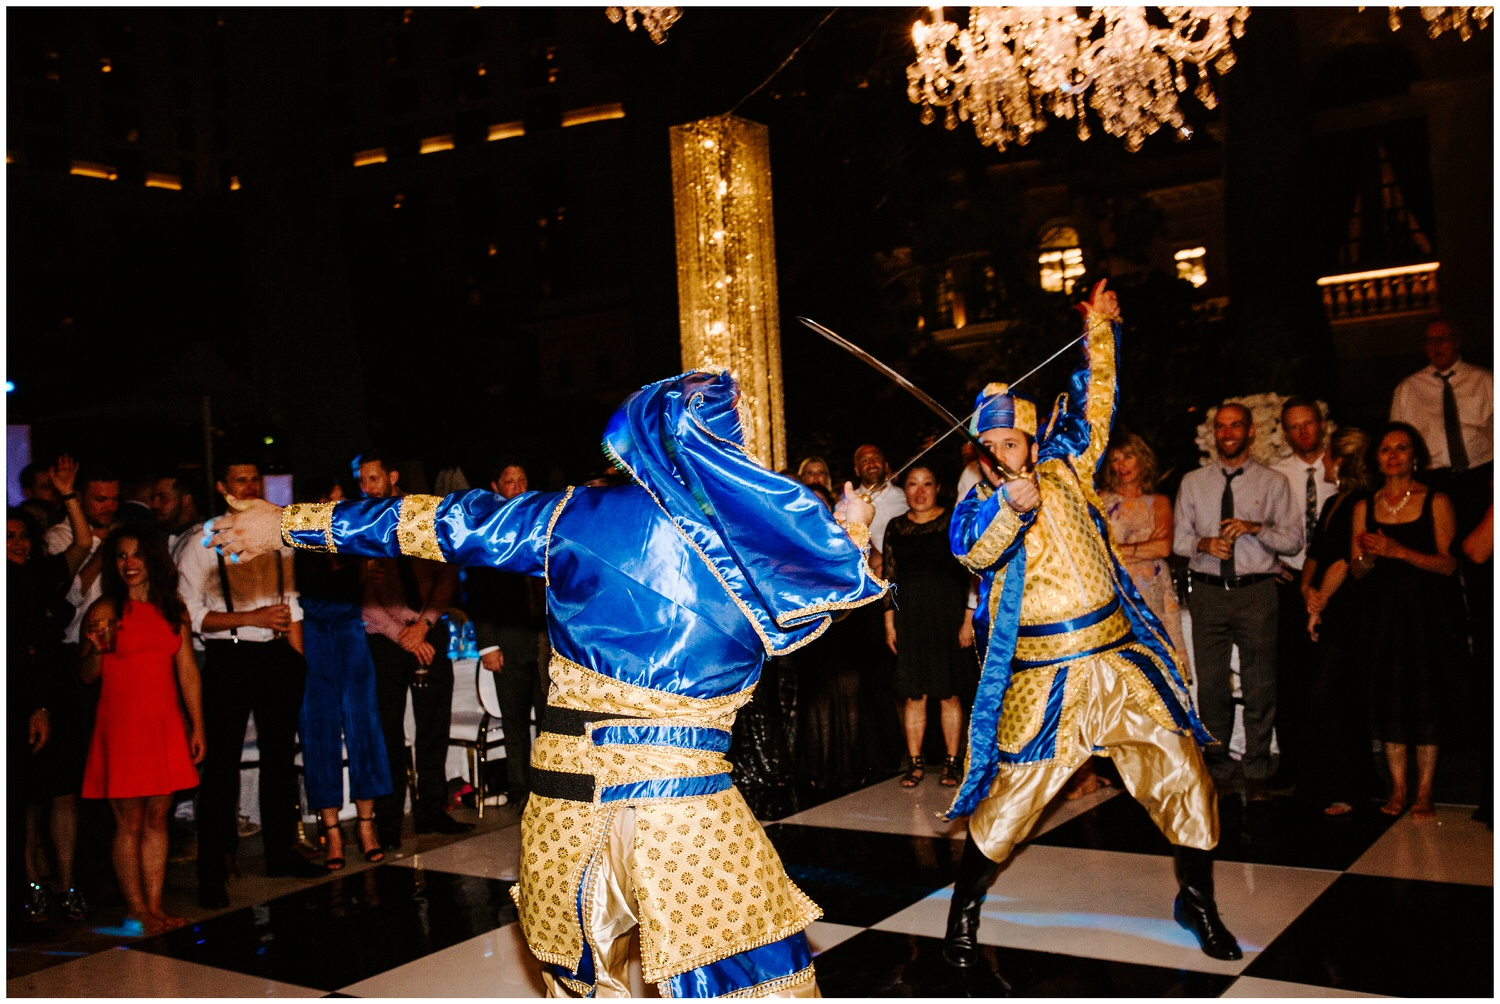 lebanese sword dancers